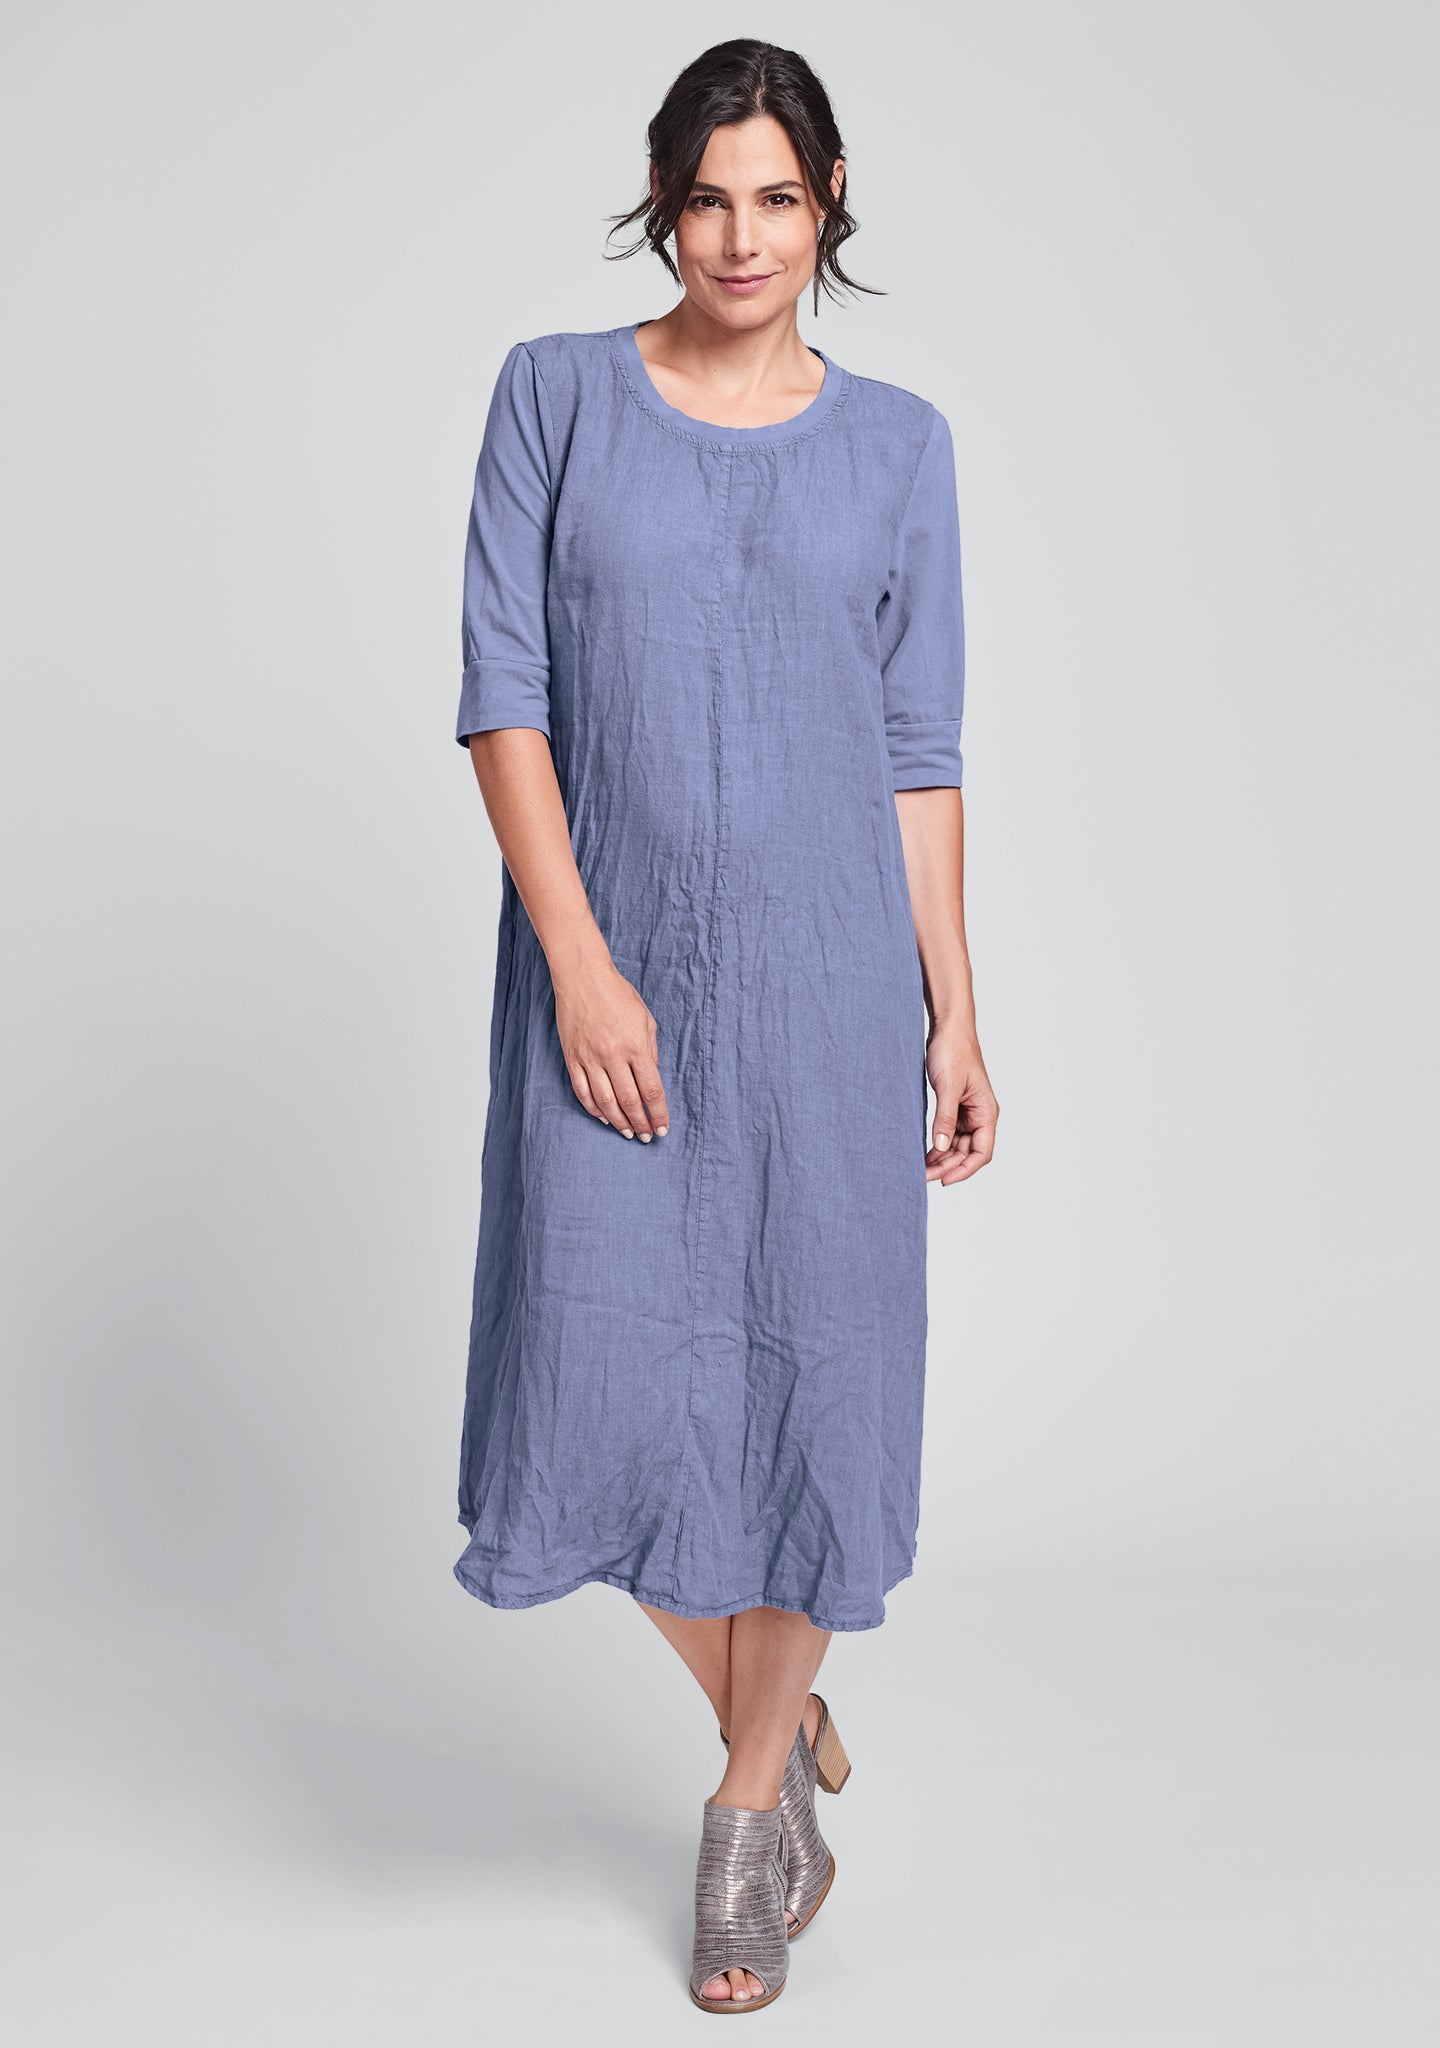 horizon dress linen maxi dress blue